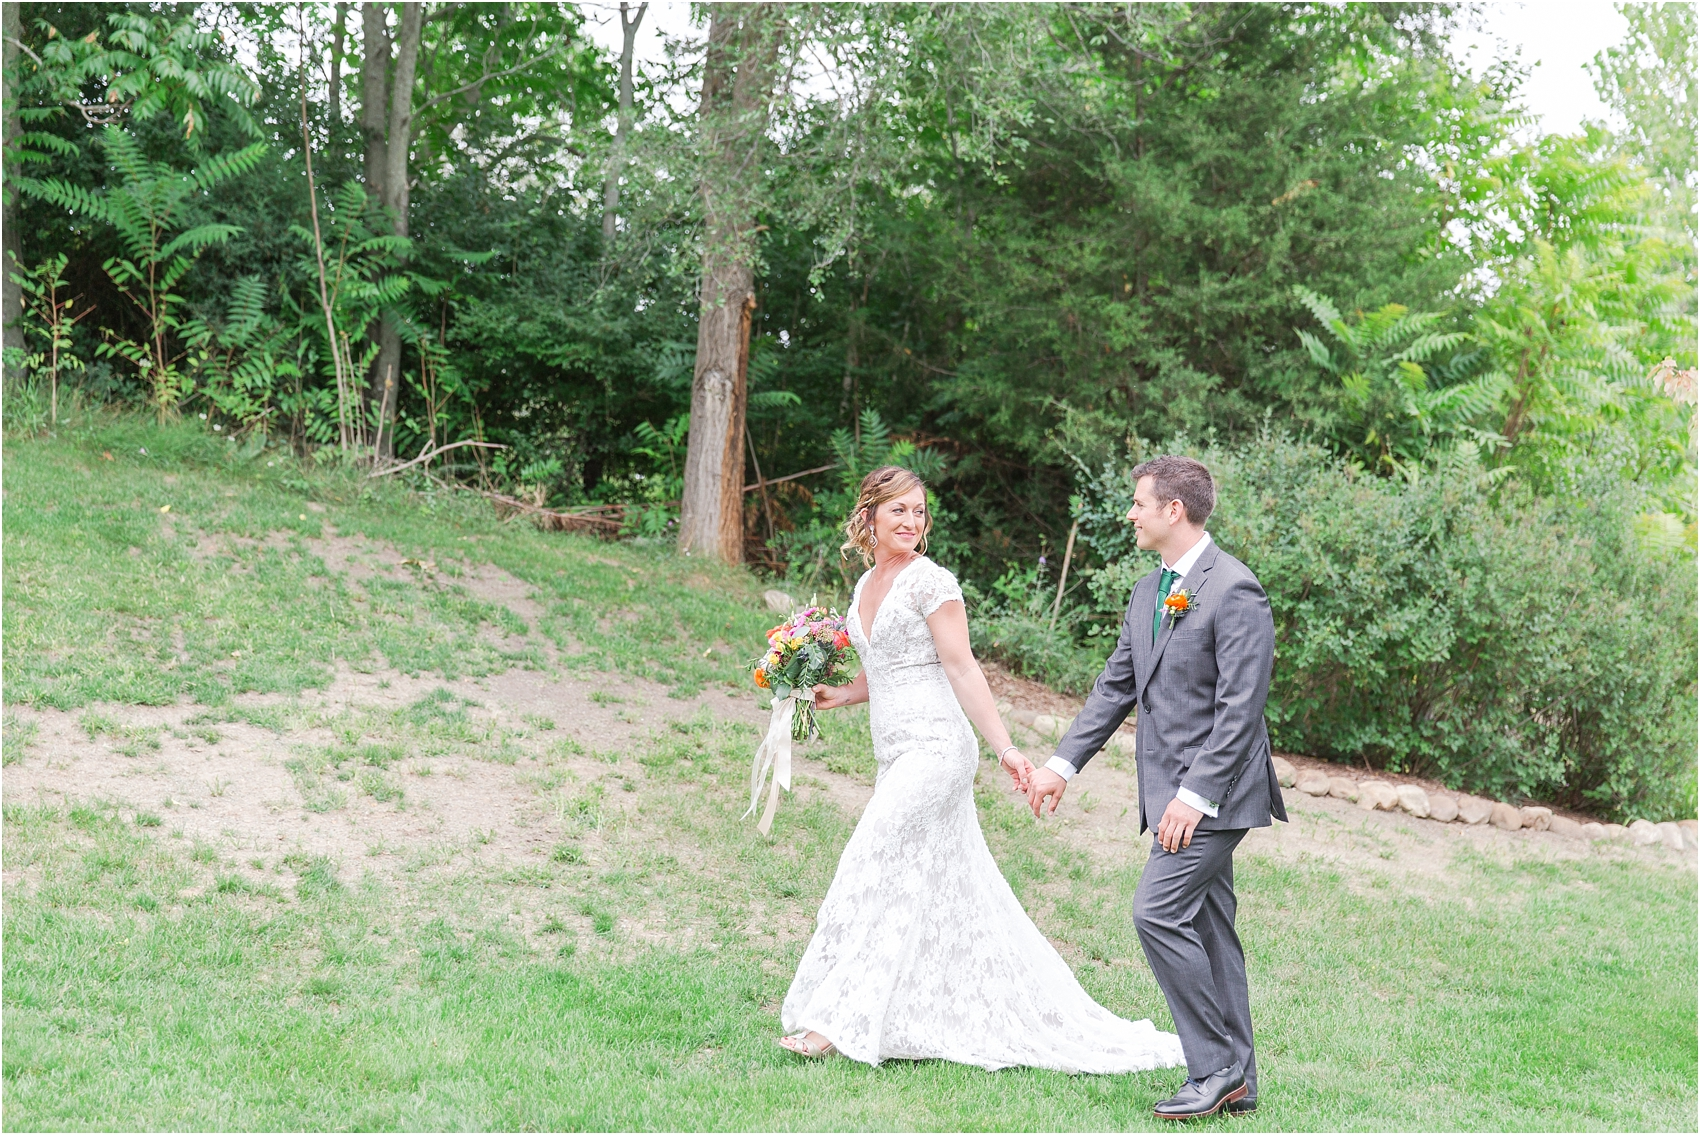 romantic-intimate-backyard-wedding-photos-at-private-estate-in-ann-arbor-mi-by-courtney-carolyn-photography_0046.jpg